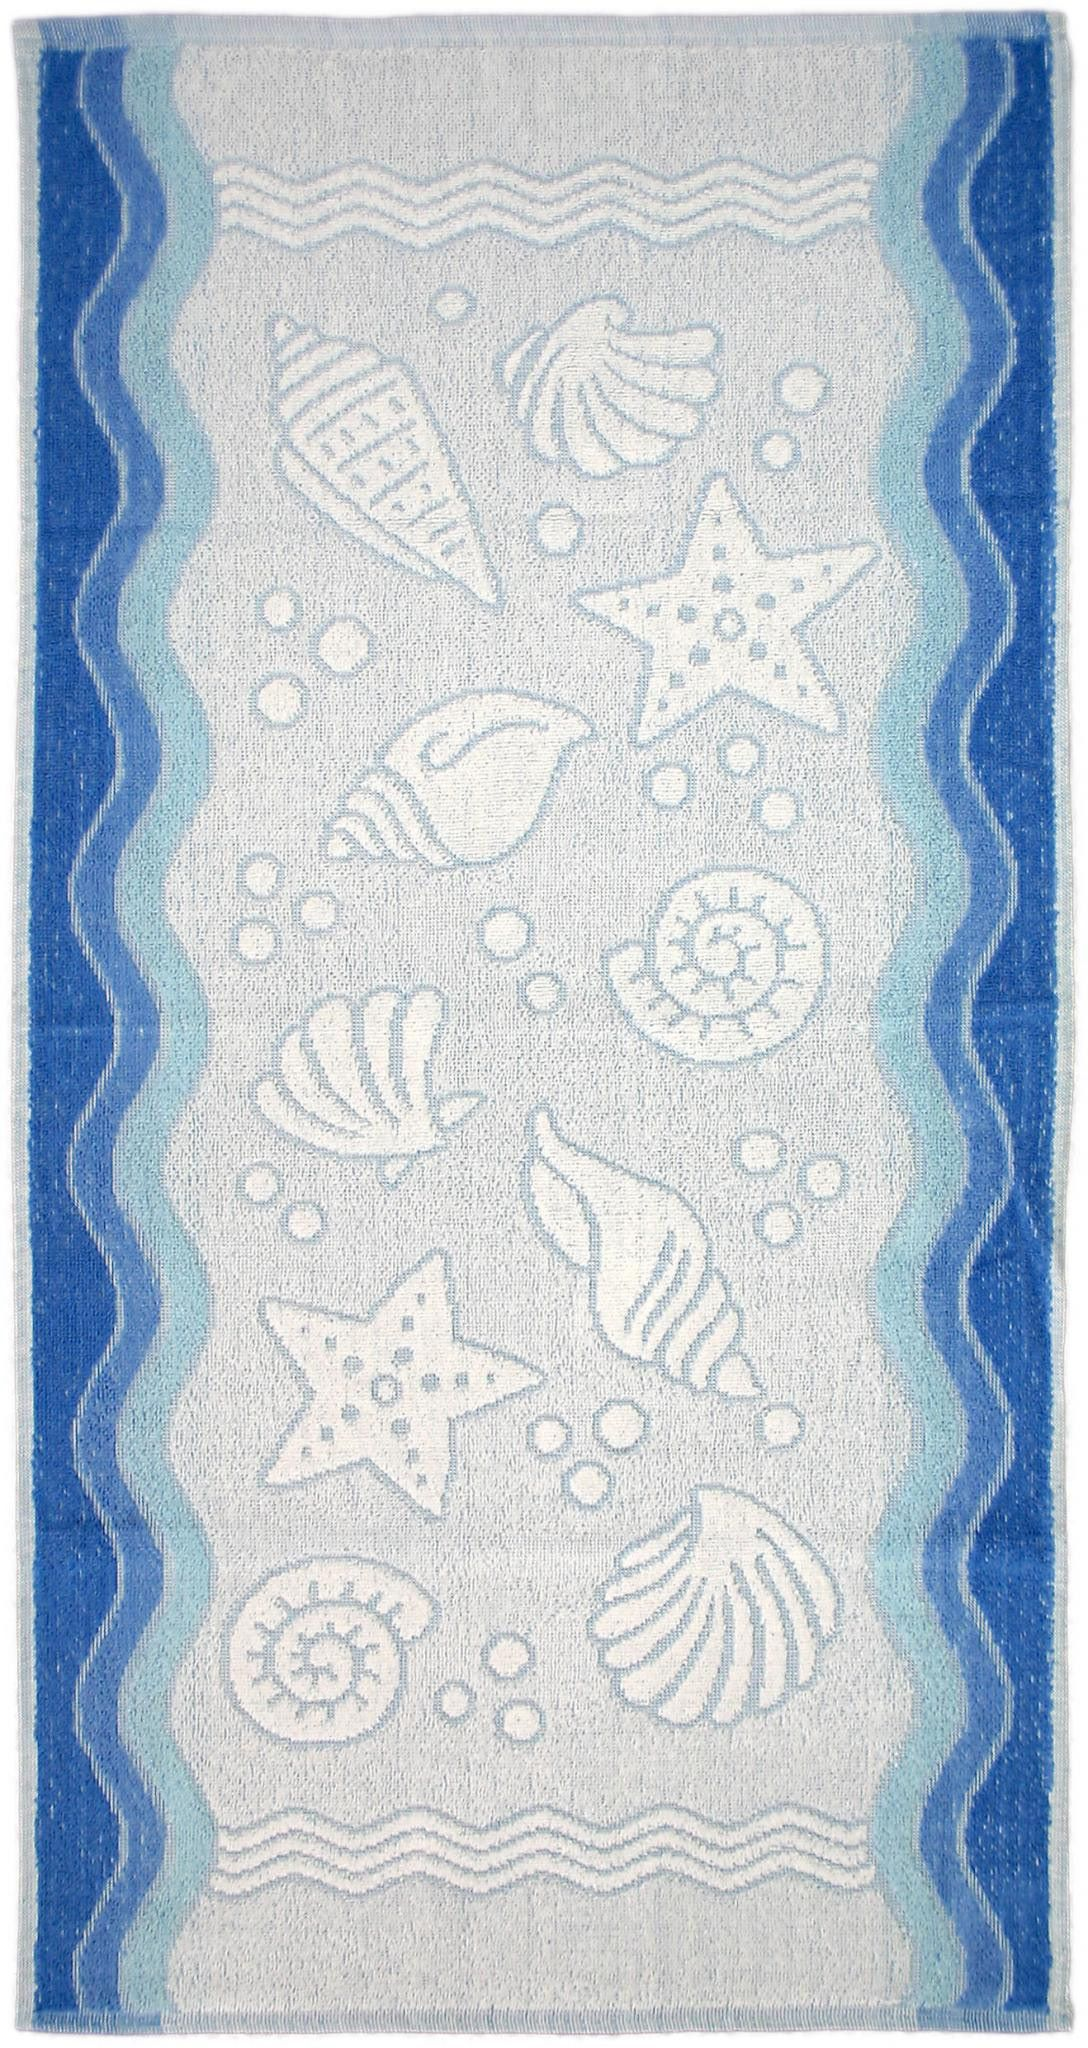 Ręcznik Flora Ocean - Niebieski - 50x100 cm - Everday Collection - Greno